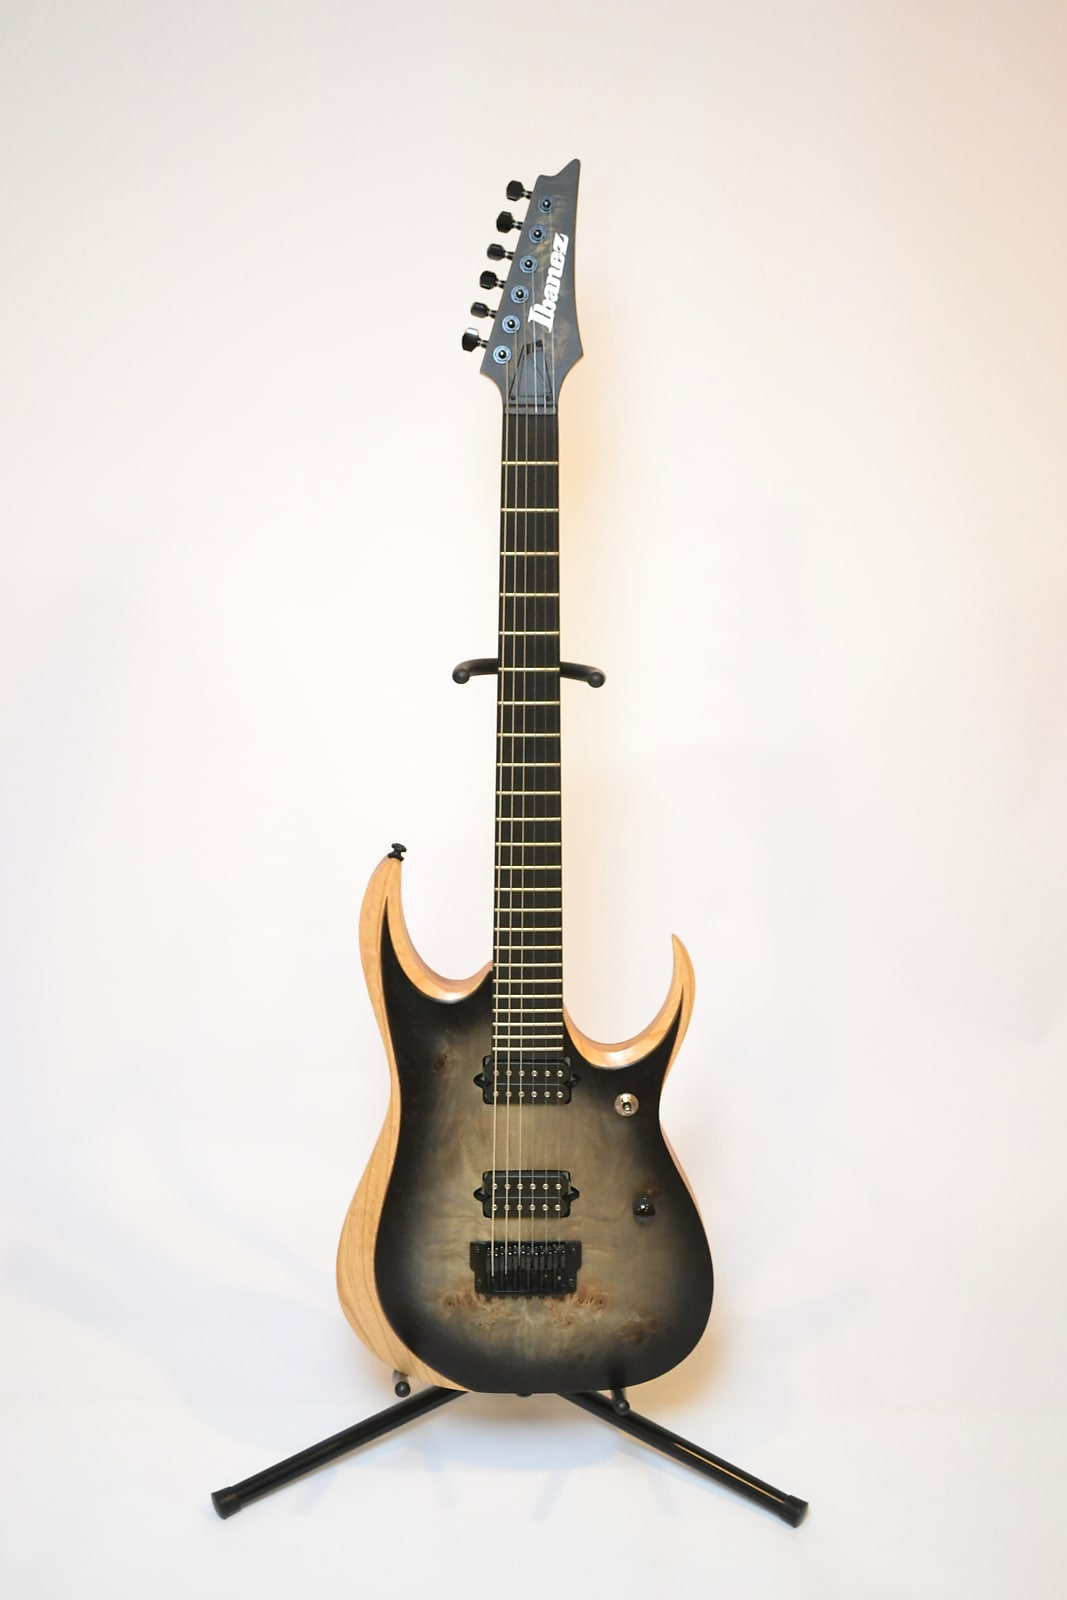 Ibanez RGDIX6PB Electric Guitar Surreal Black Burst - Refurbished